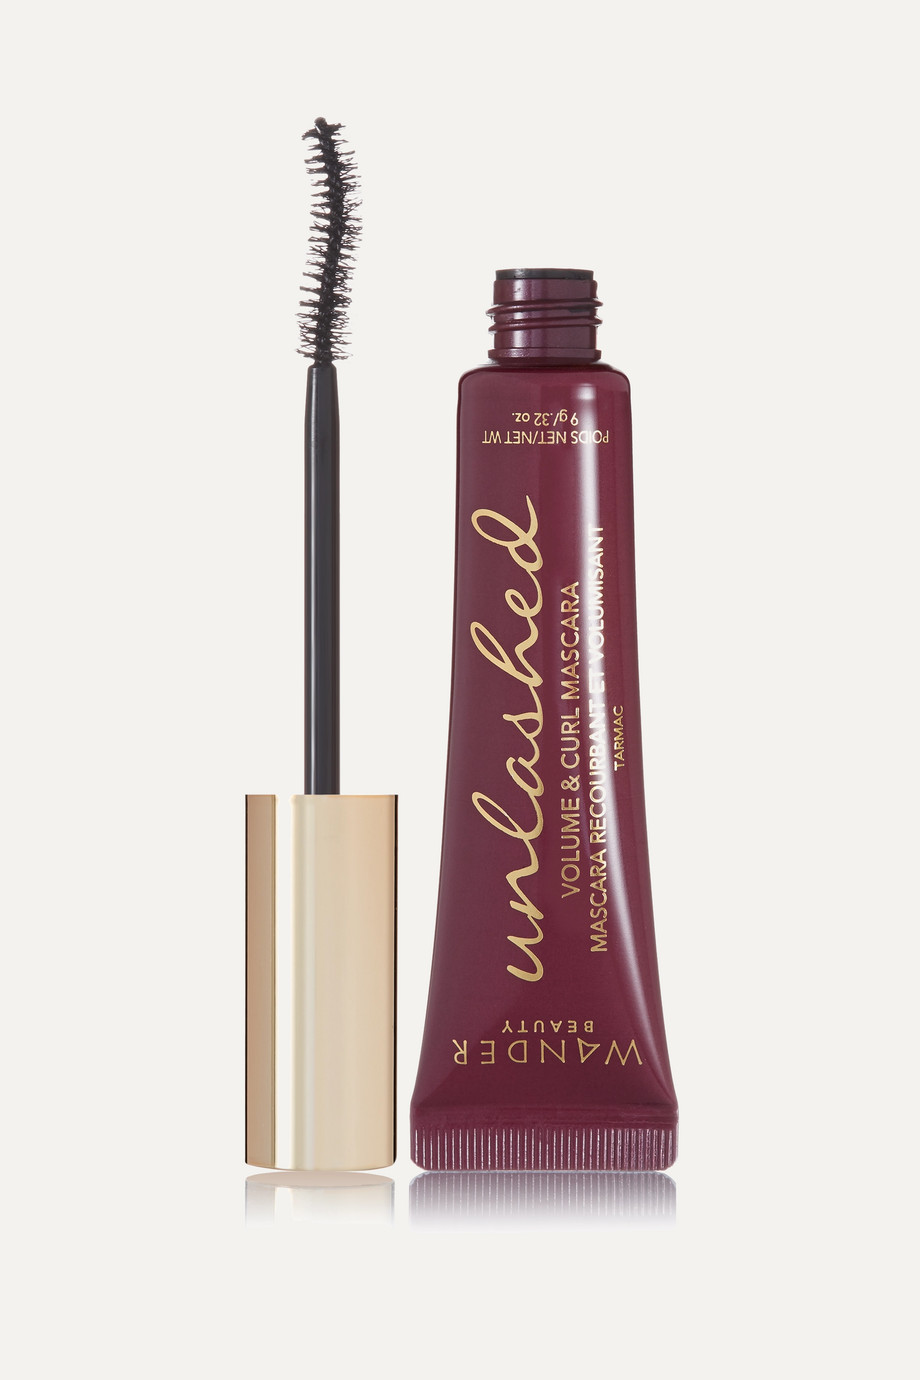 Wander Beauty Unlashed Volume and Curl Mascara - Tarmac